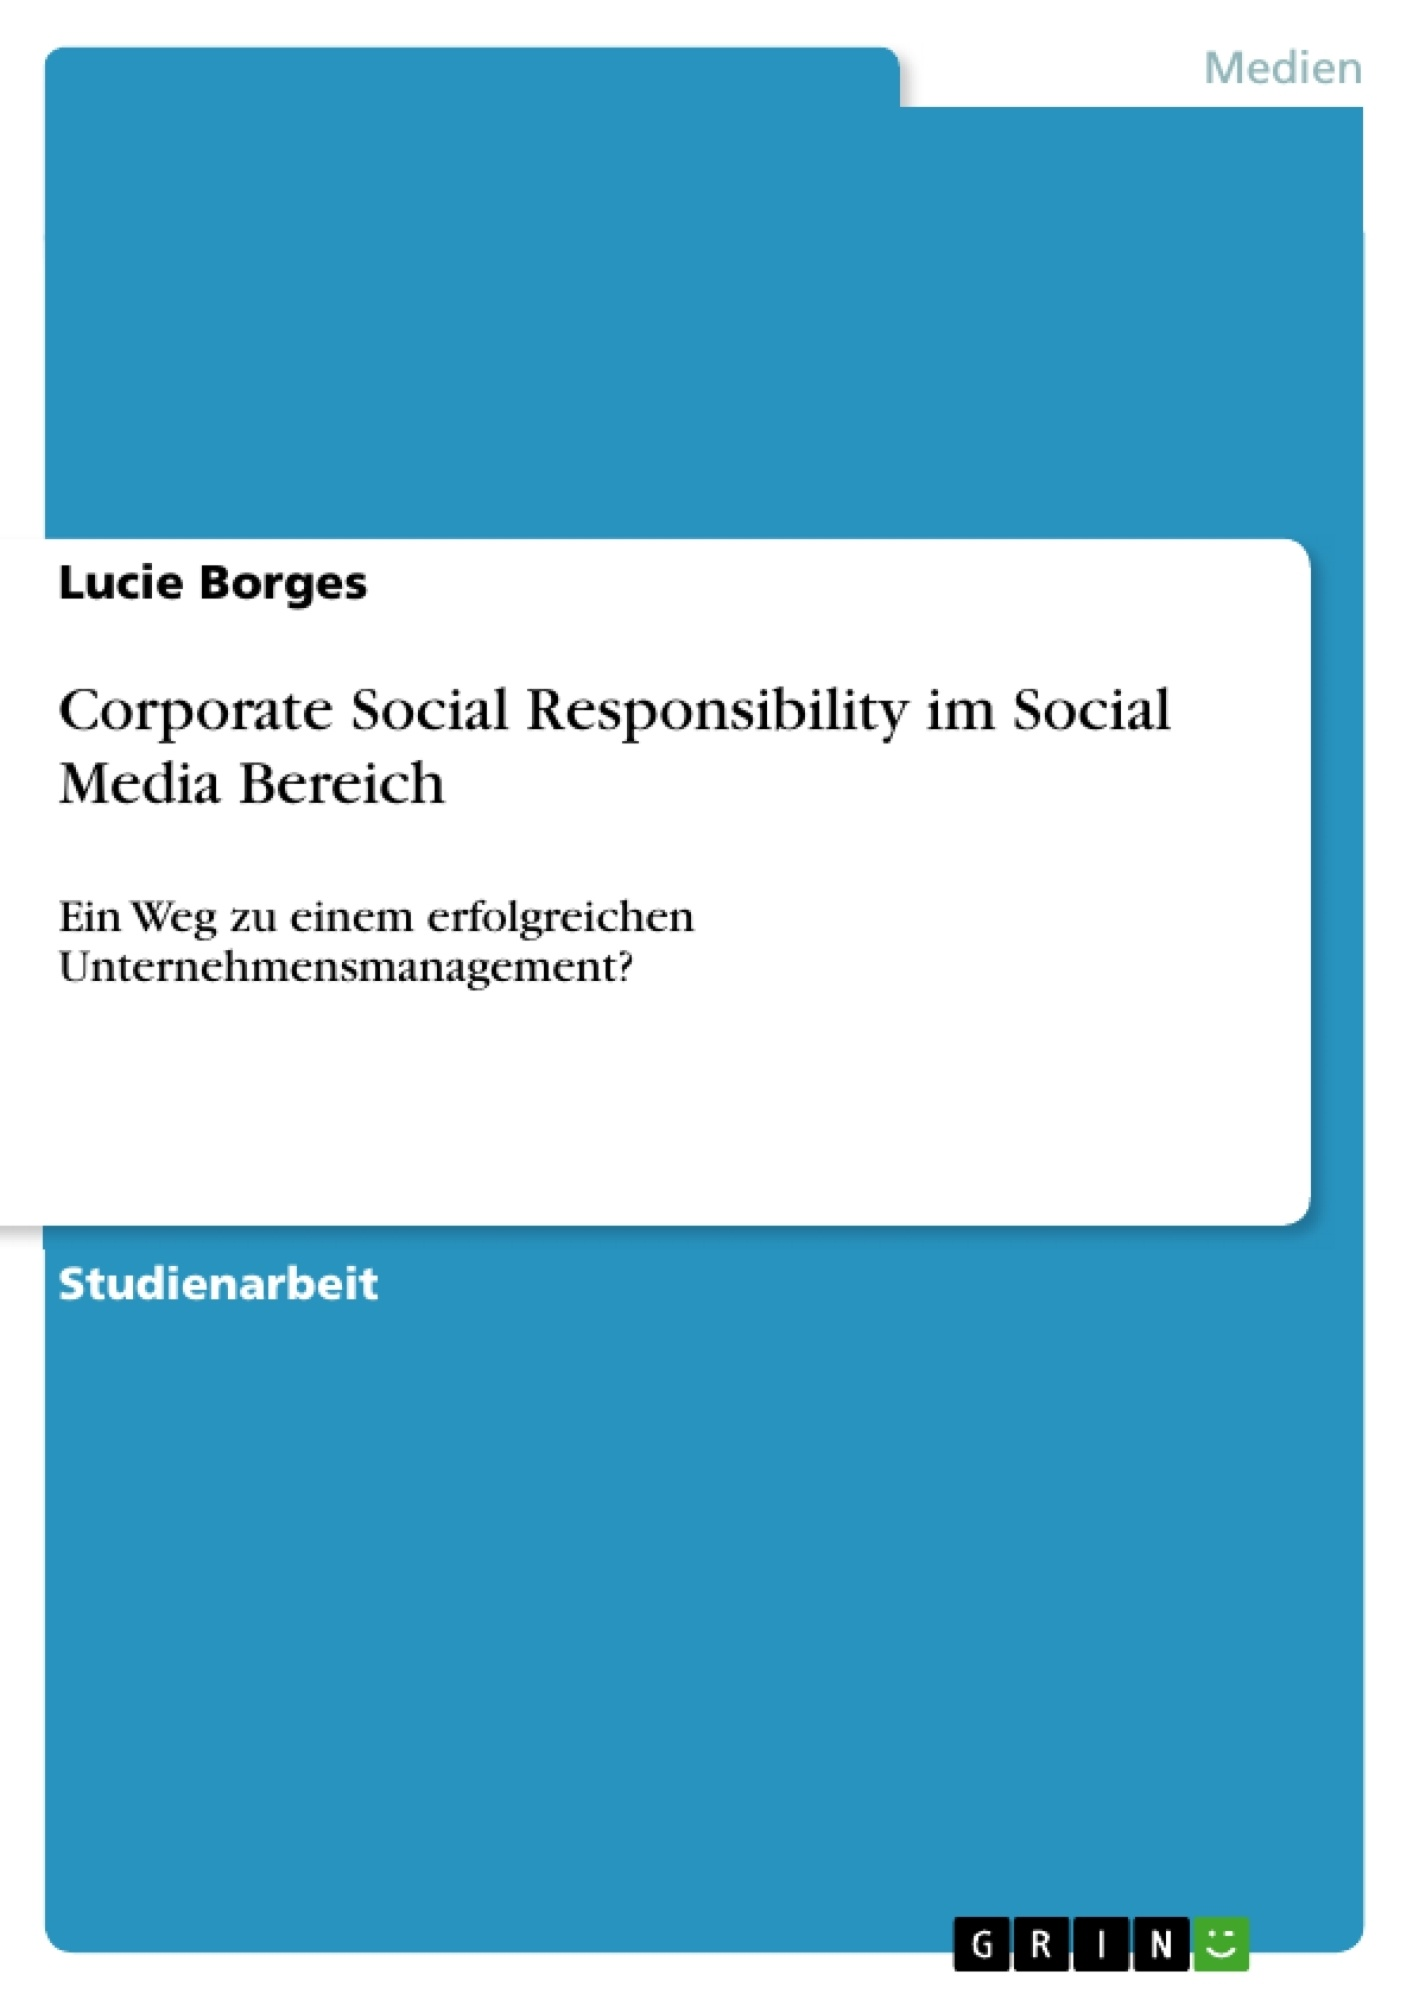 Titel: Corporate Social Responsibility im Social Media Bereich